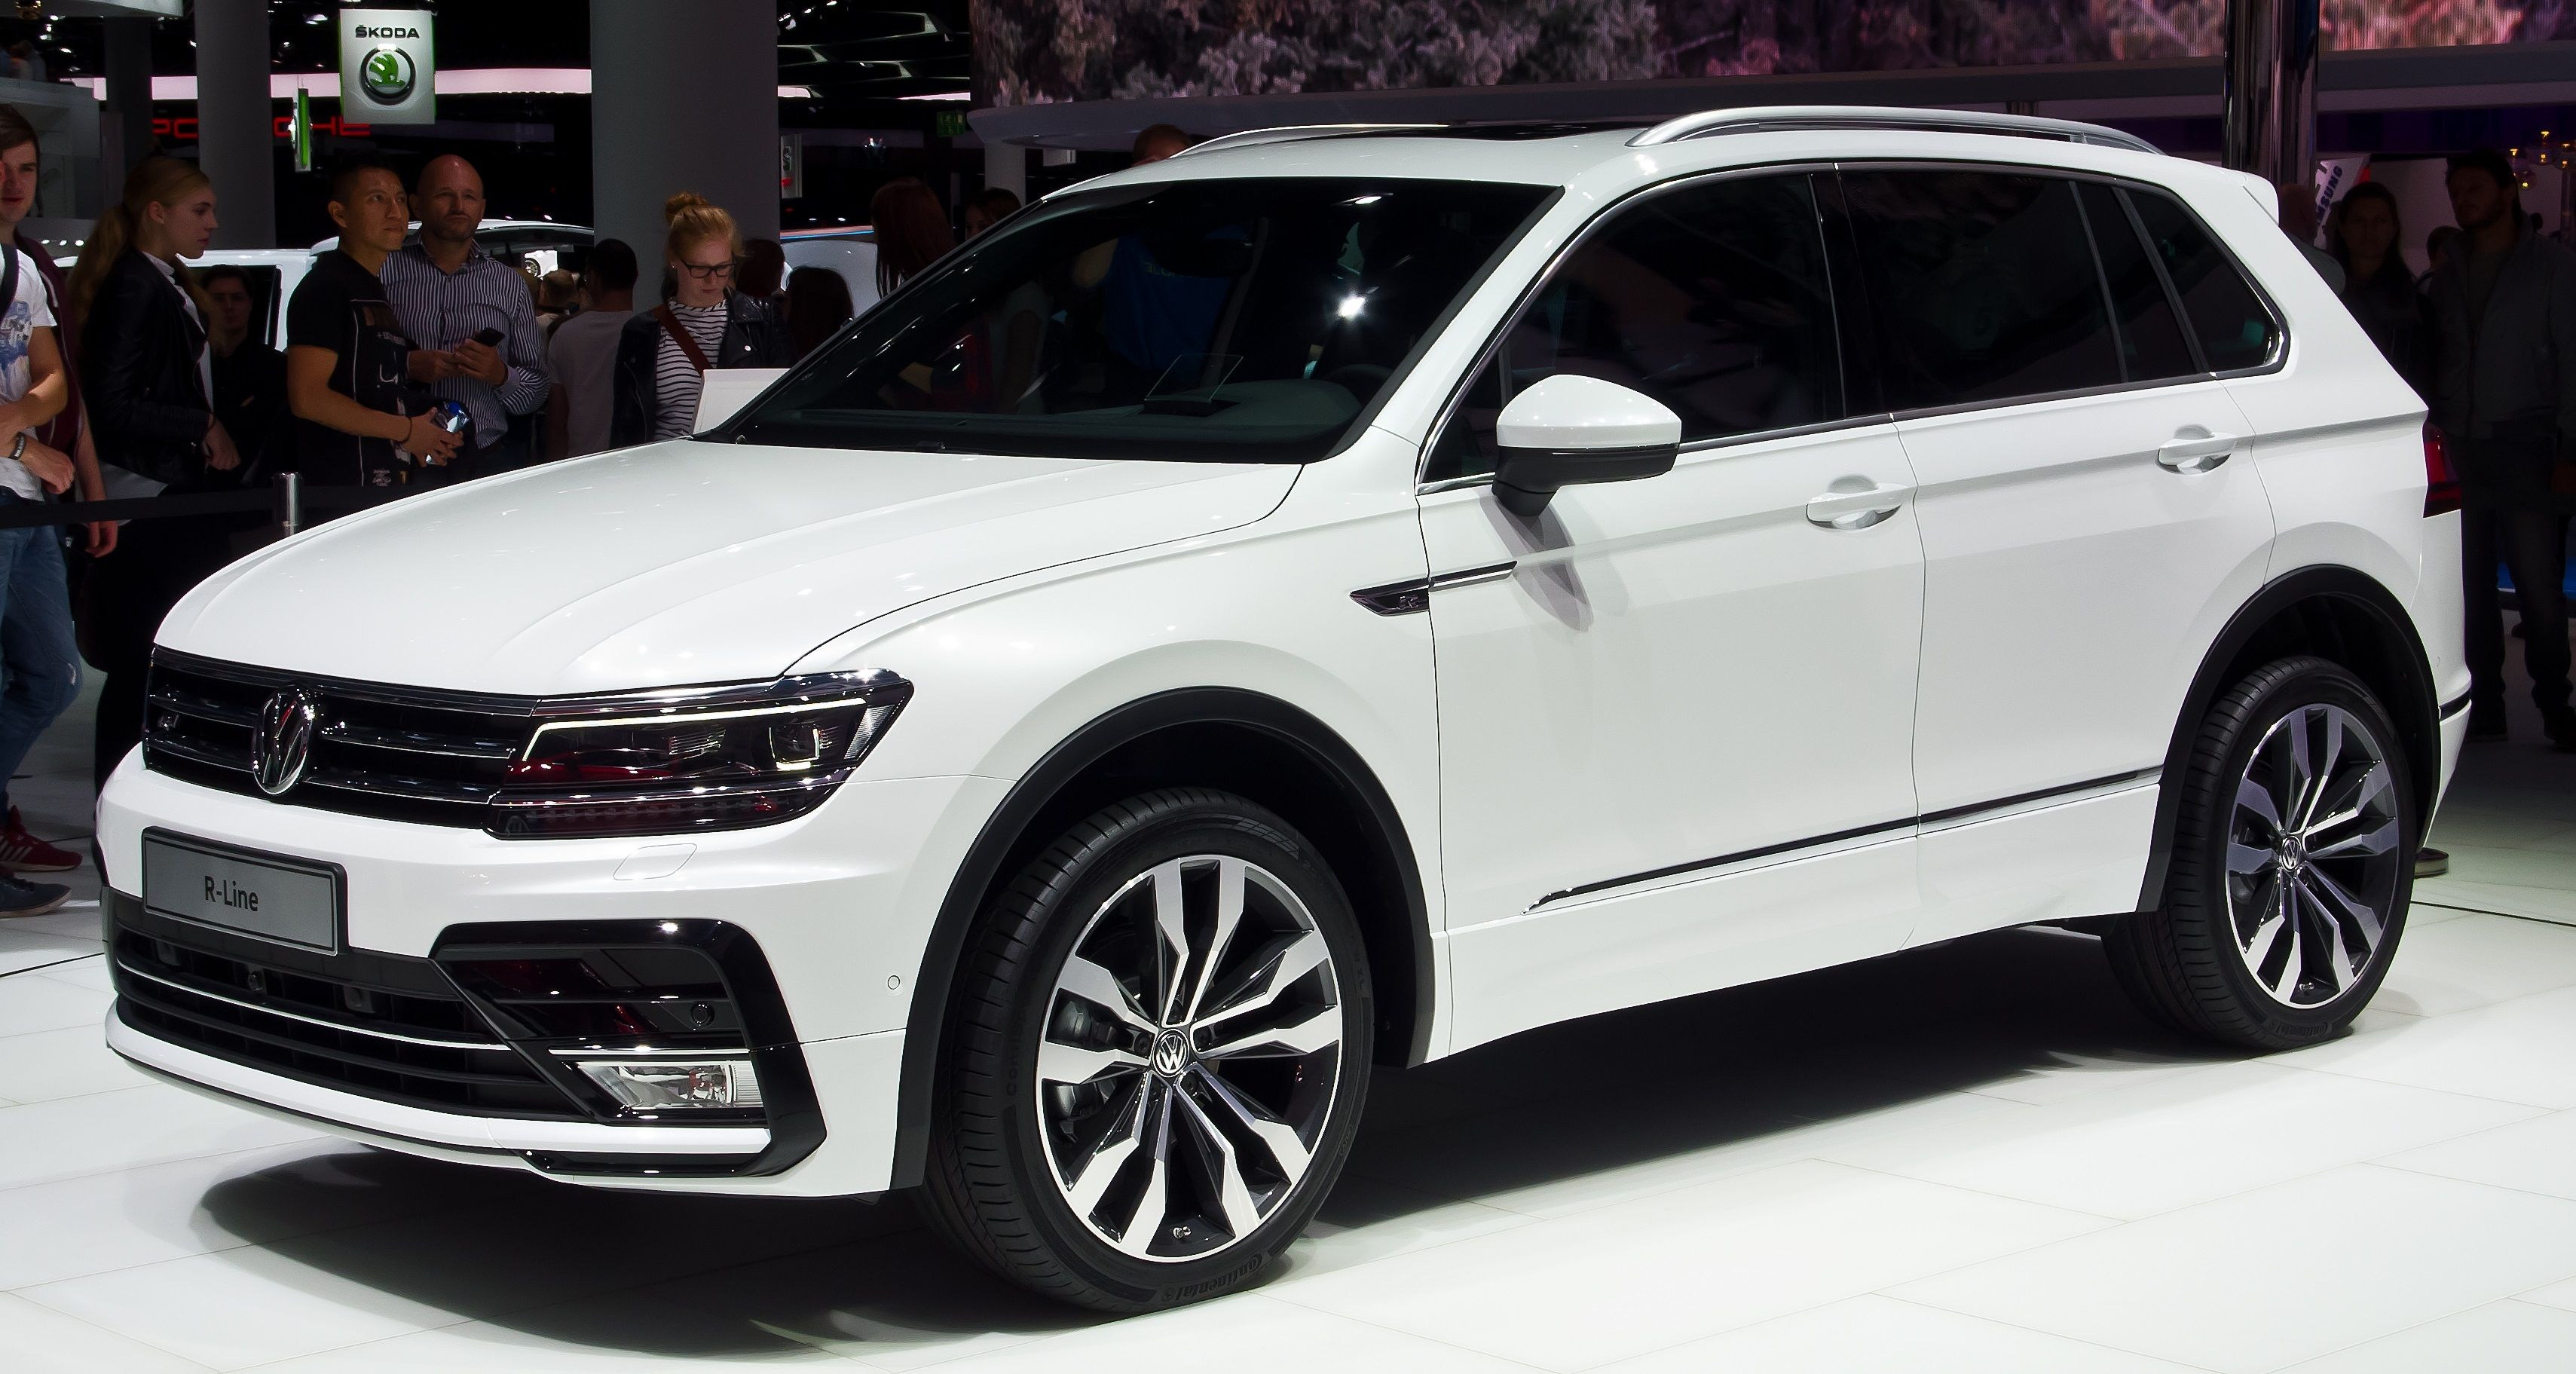 Vw tiguan3 volkswagen tiguan unveiled at auto expo 2016